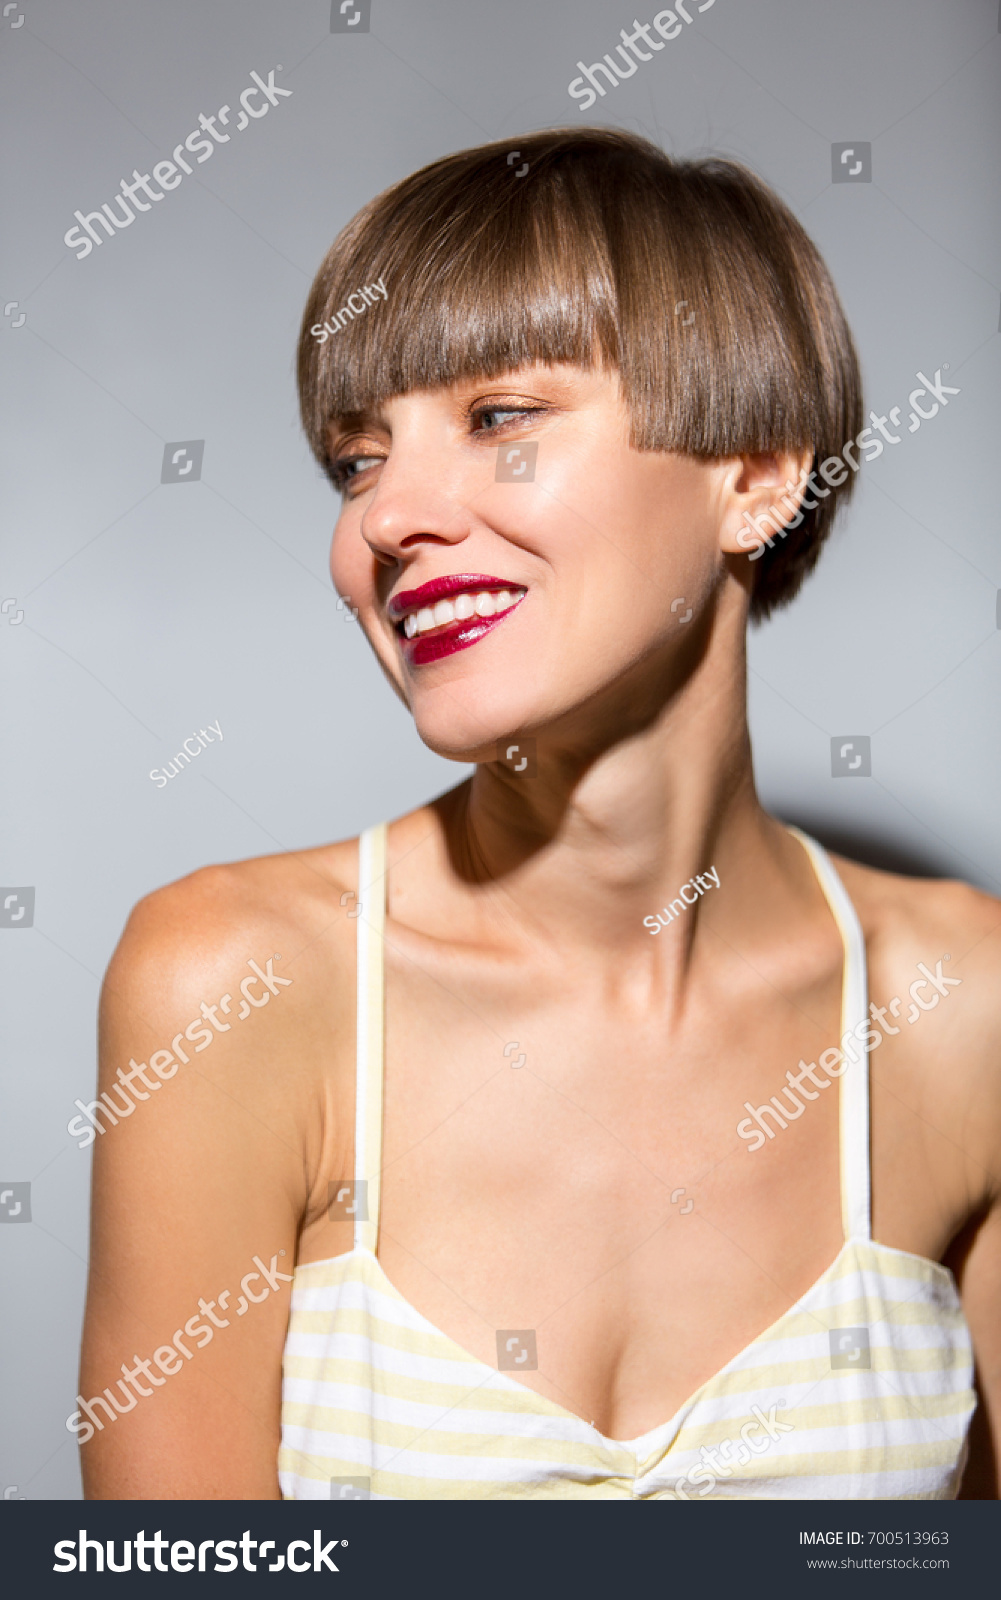 9379e271ad8 Smiling beautiful woman with brown short hair. Haircut. Hairstyle. Fringe.  Professional makeup